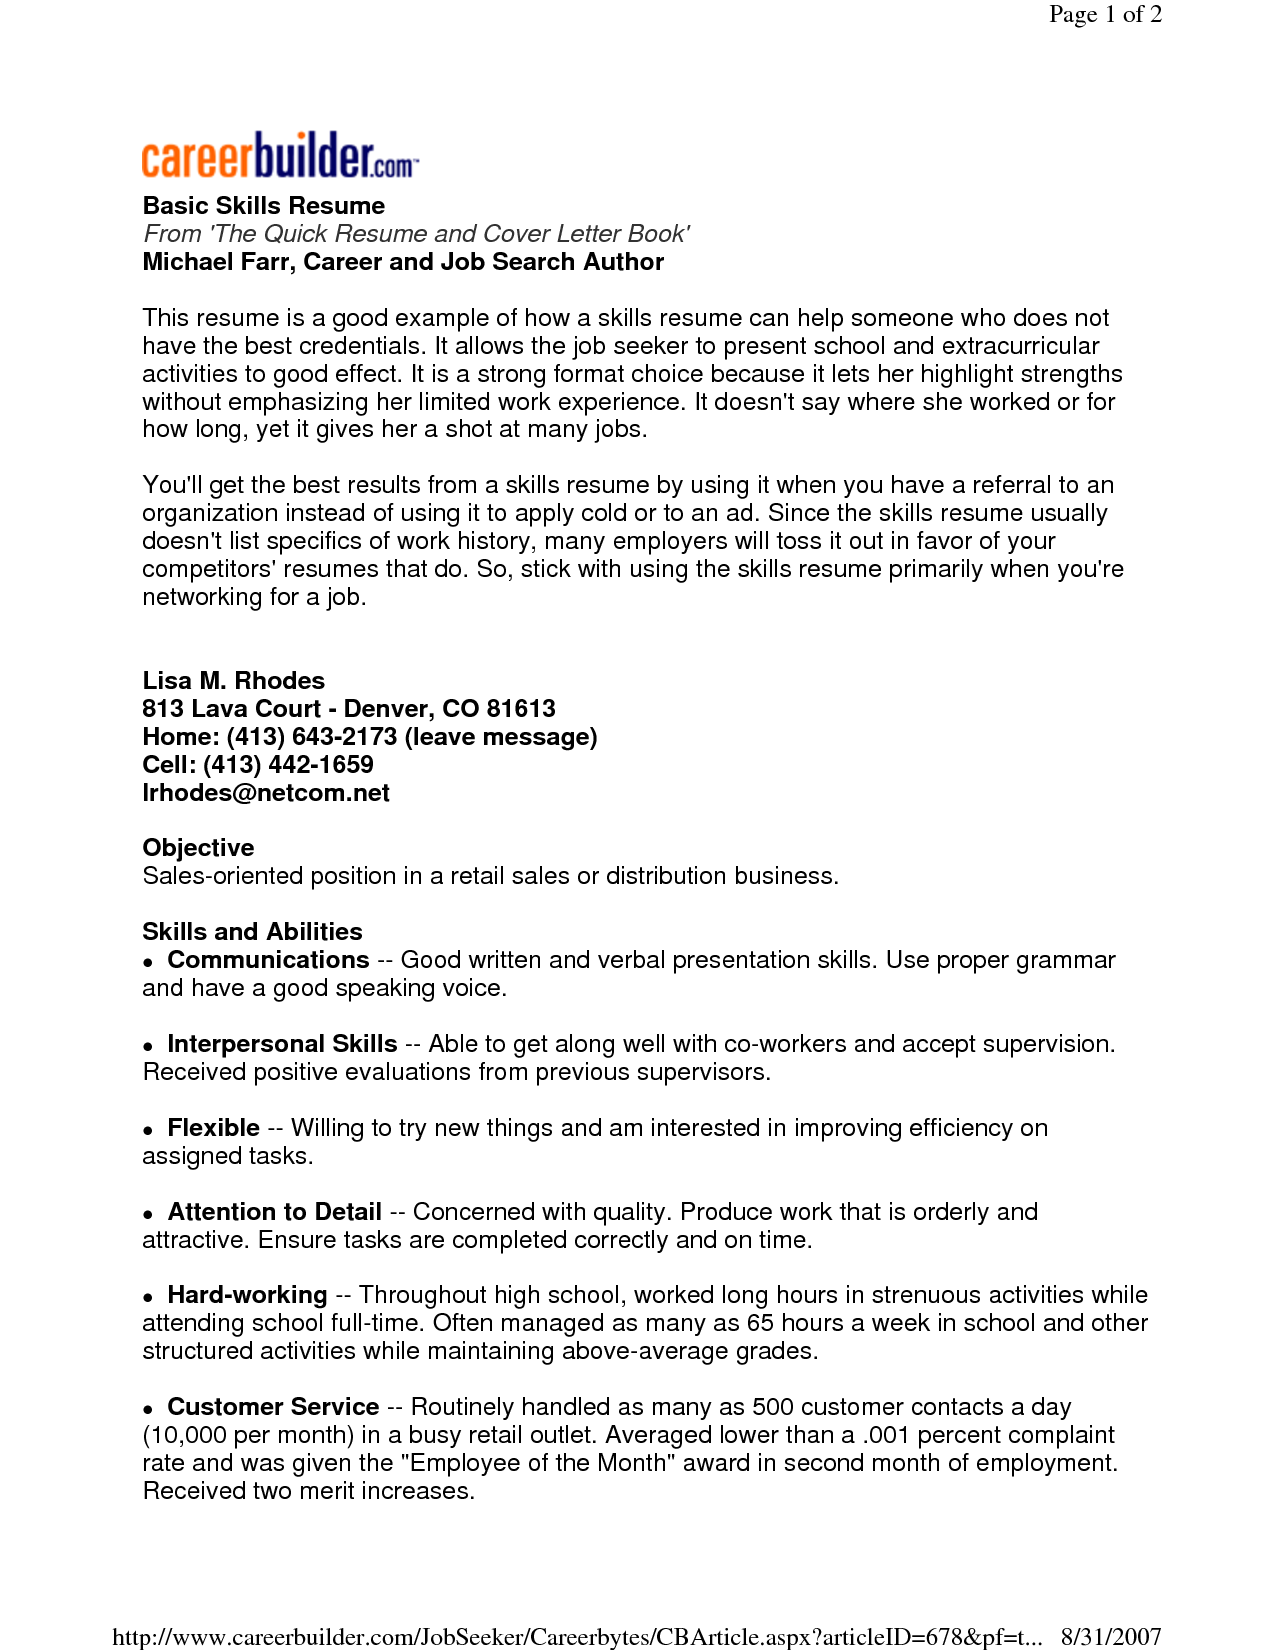 Sample Resume Skills Find Here The Sample Resume That Best Fits Your Profile In Order